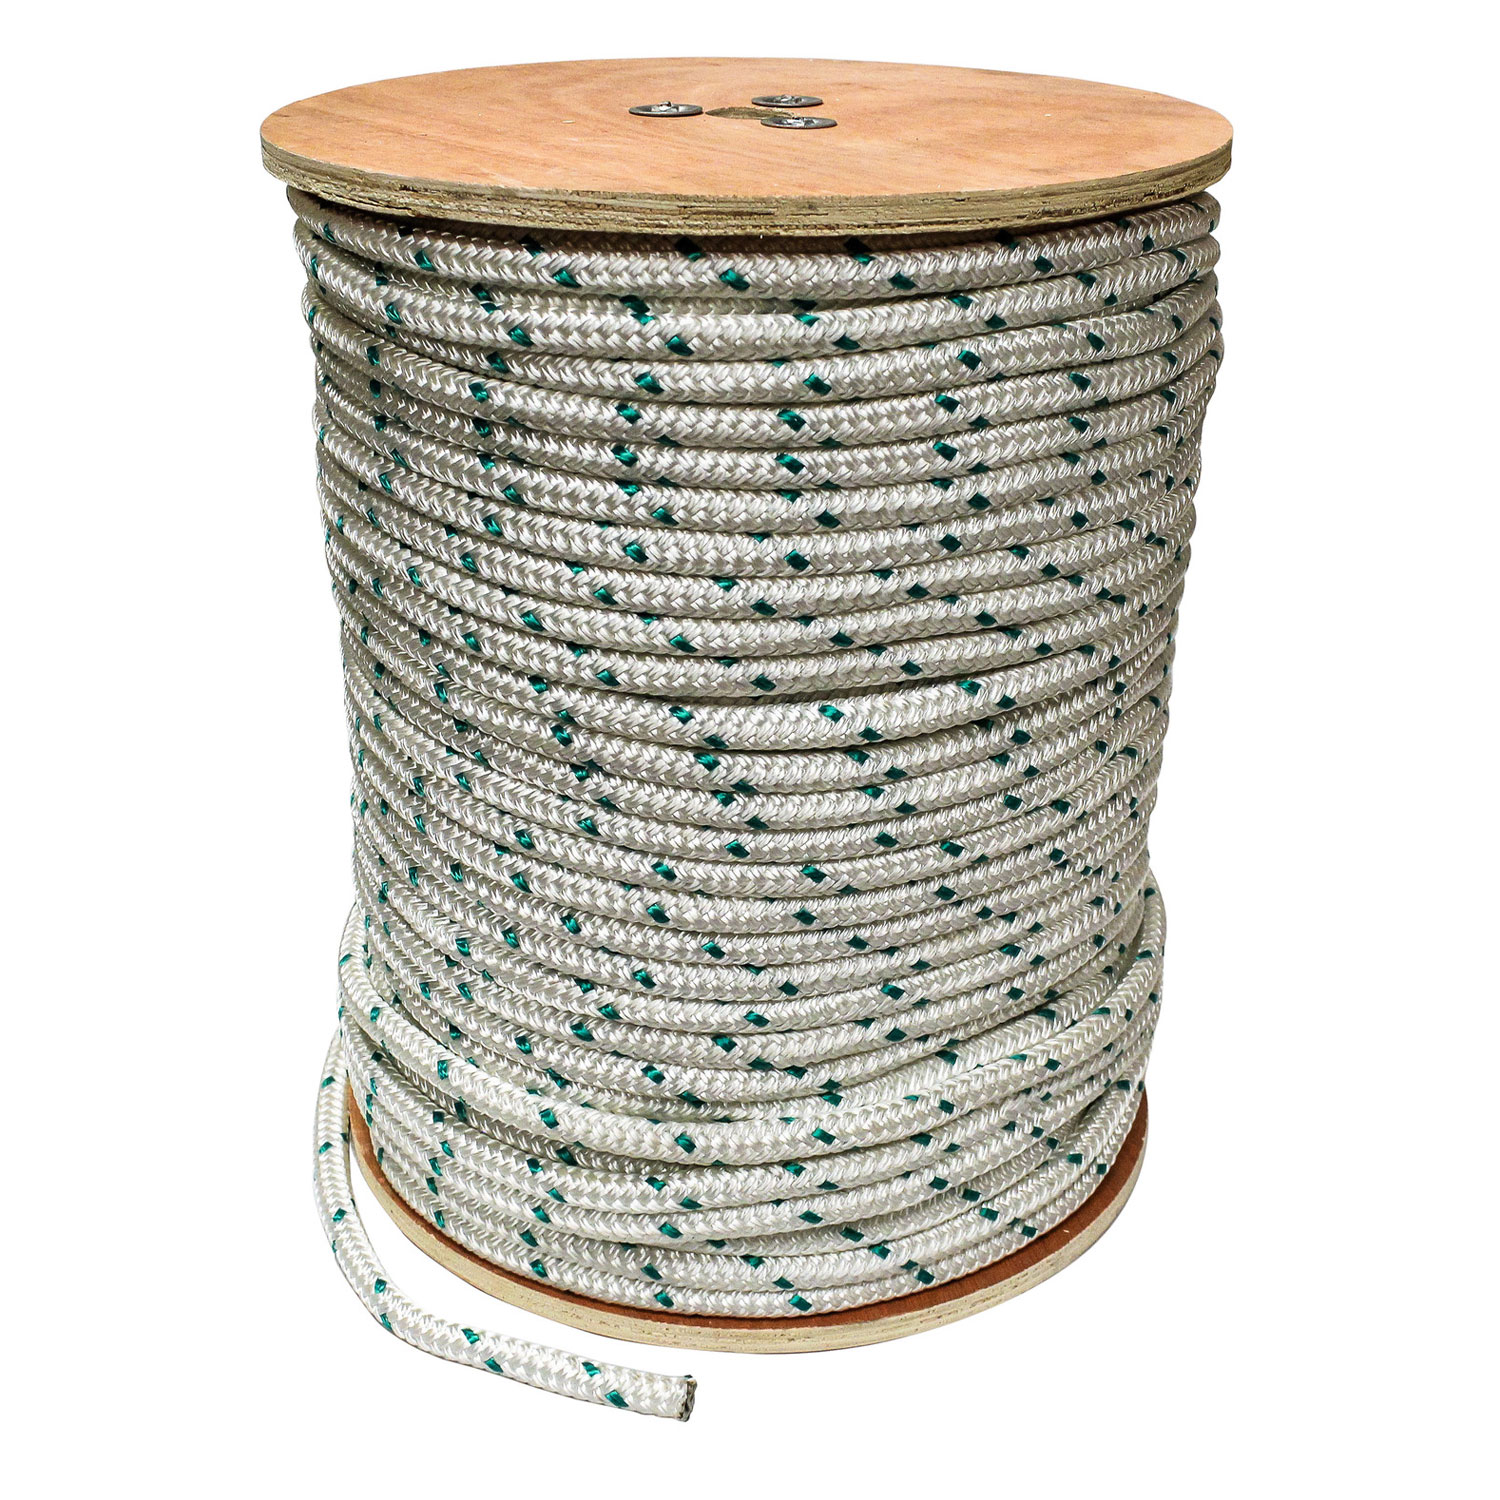 Cordage & Rope Archives – Arctic Wire Rope & SupplyArctic Wire Rope ...